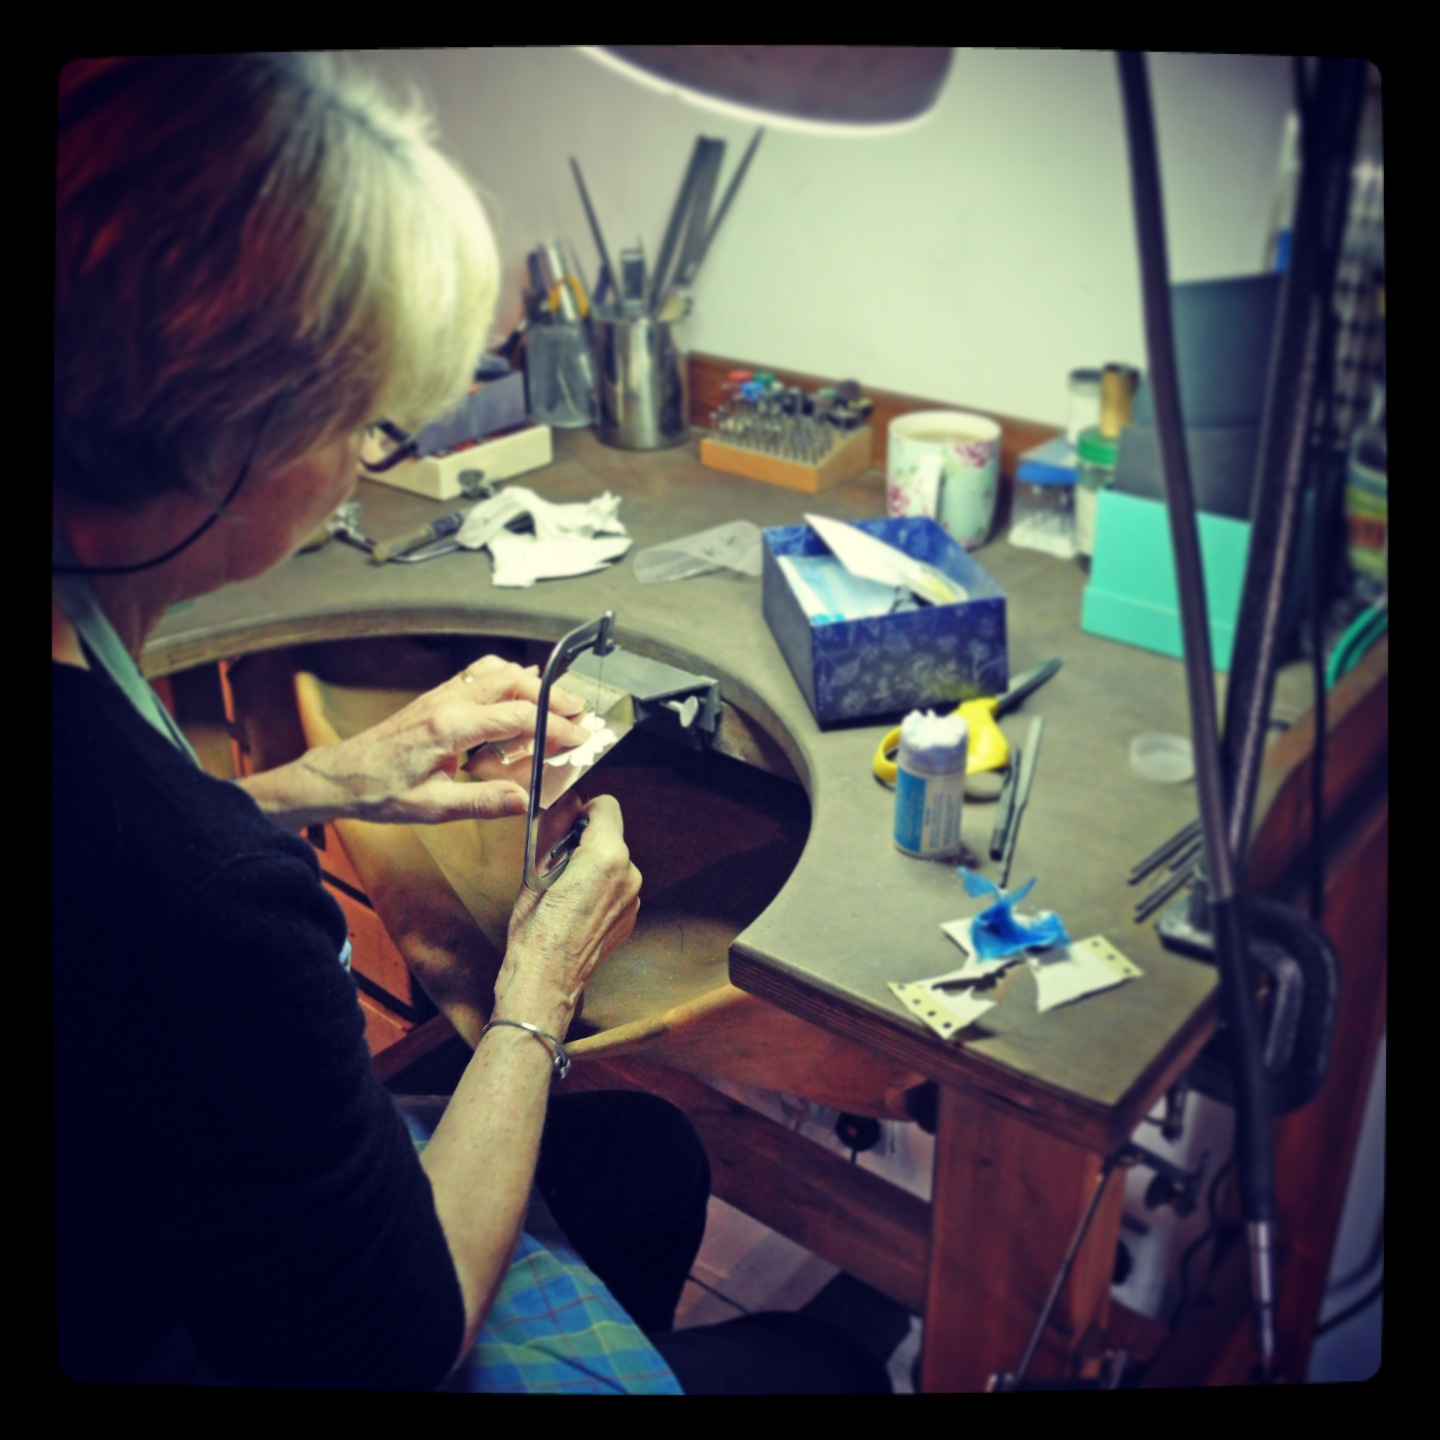 Piercing (sawing) silver and managing not to break a single blade!